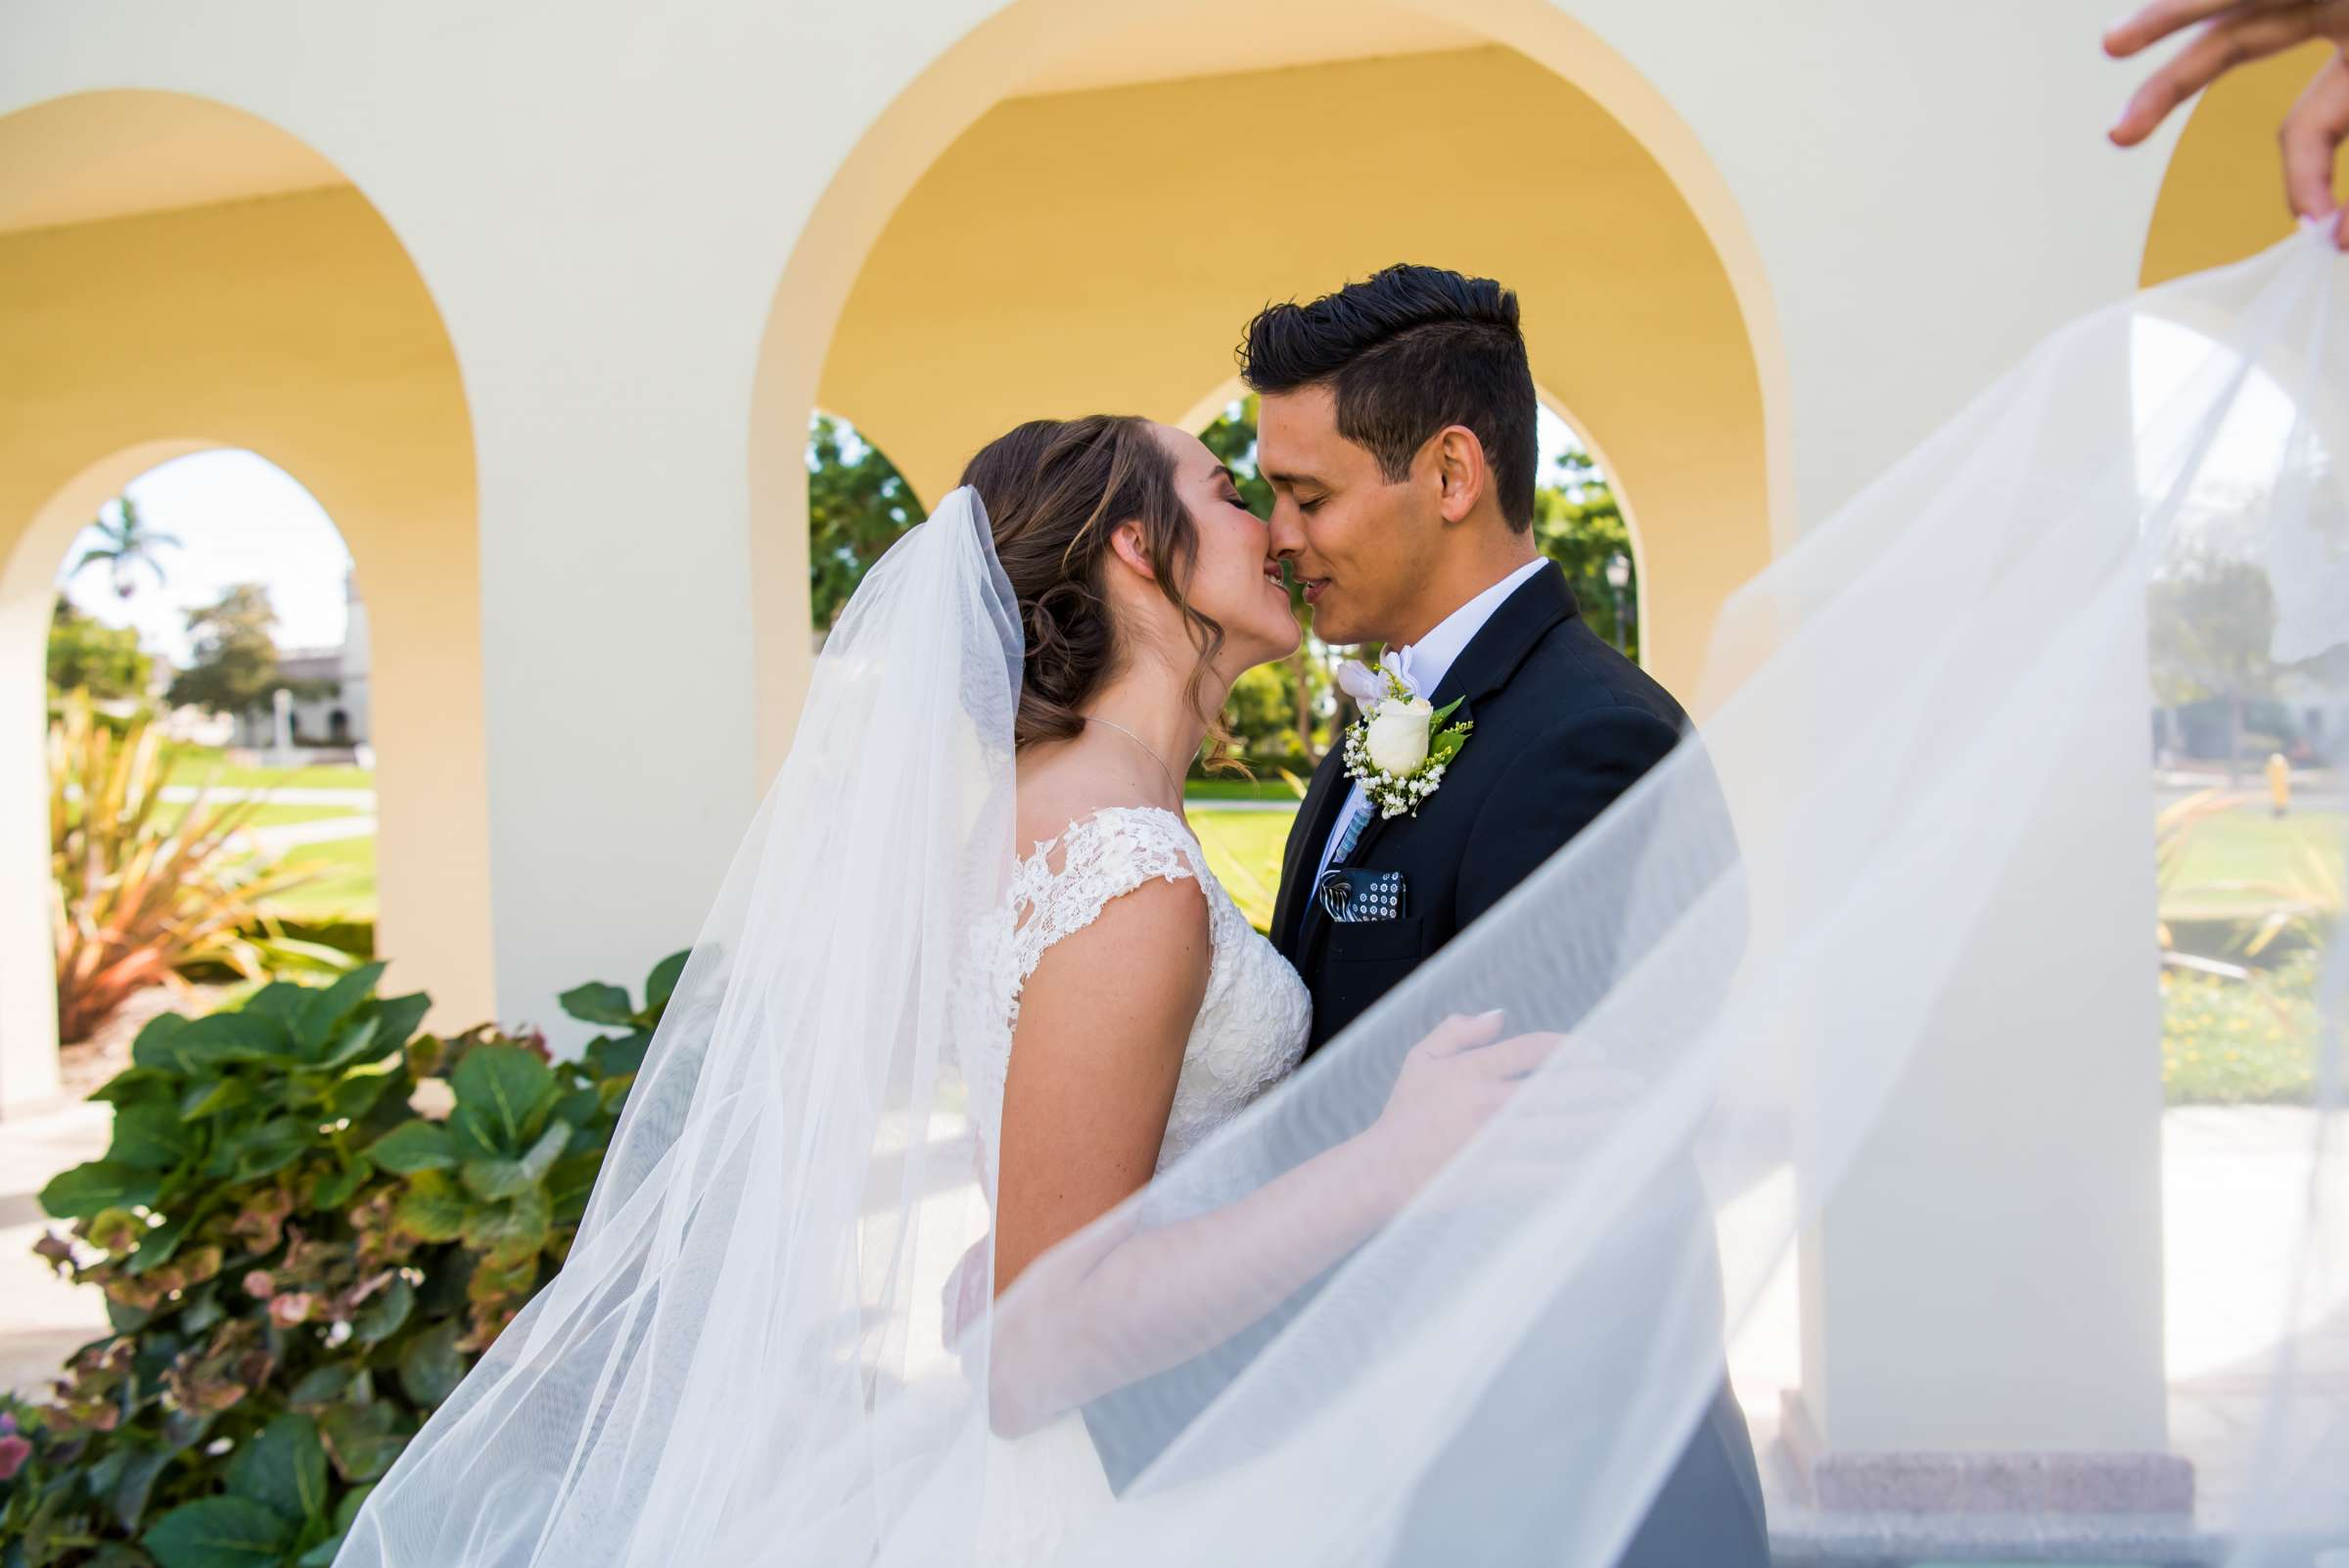 The Immaculata Wedding, Arianna and Jonah Wedding Photo #21 by True Photography